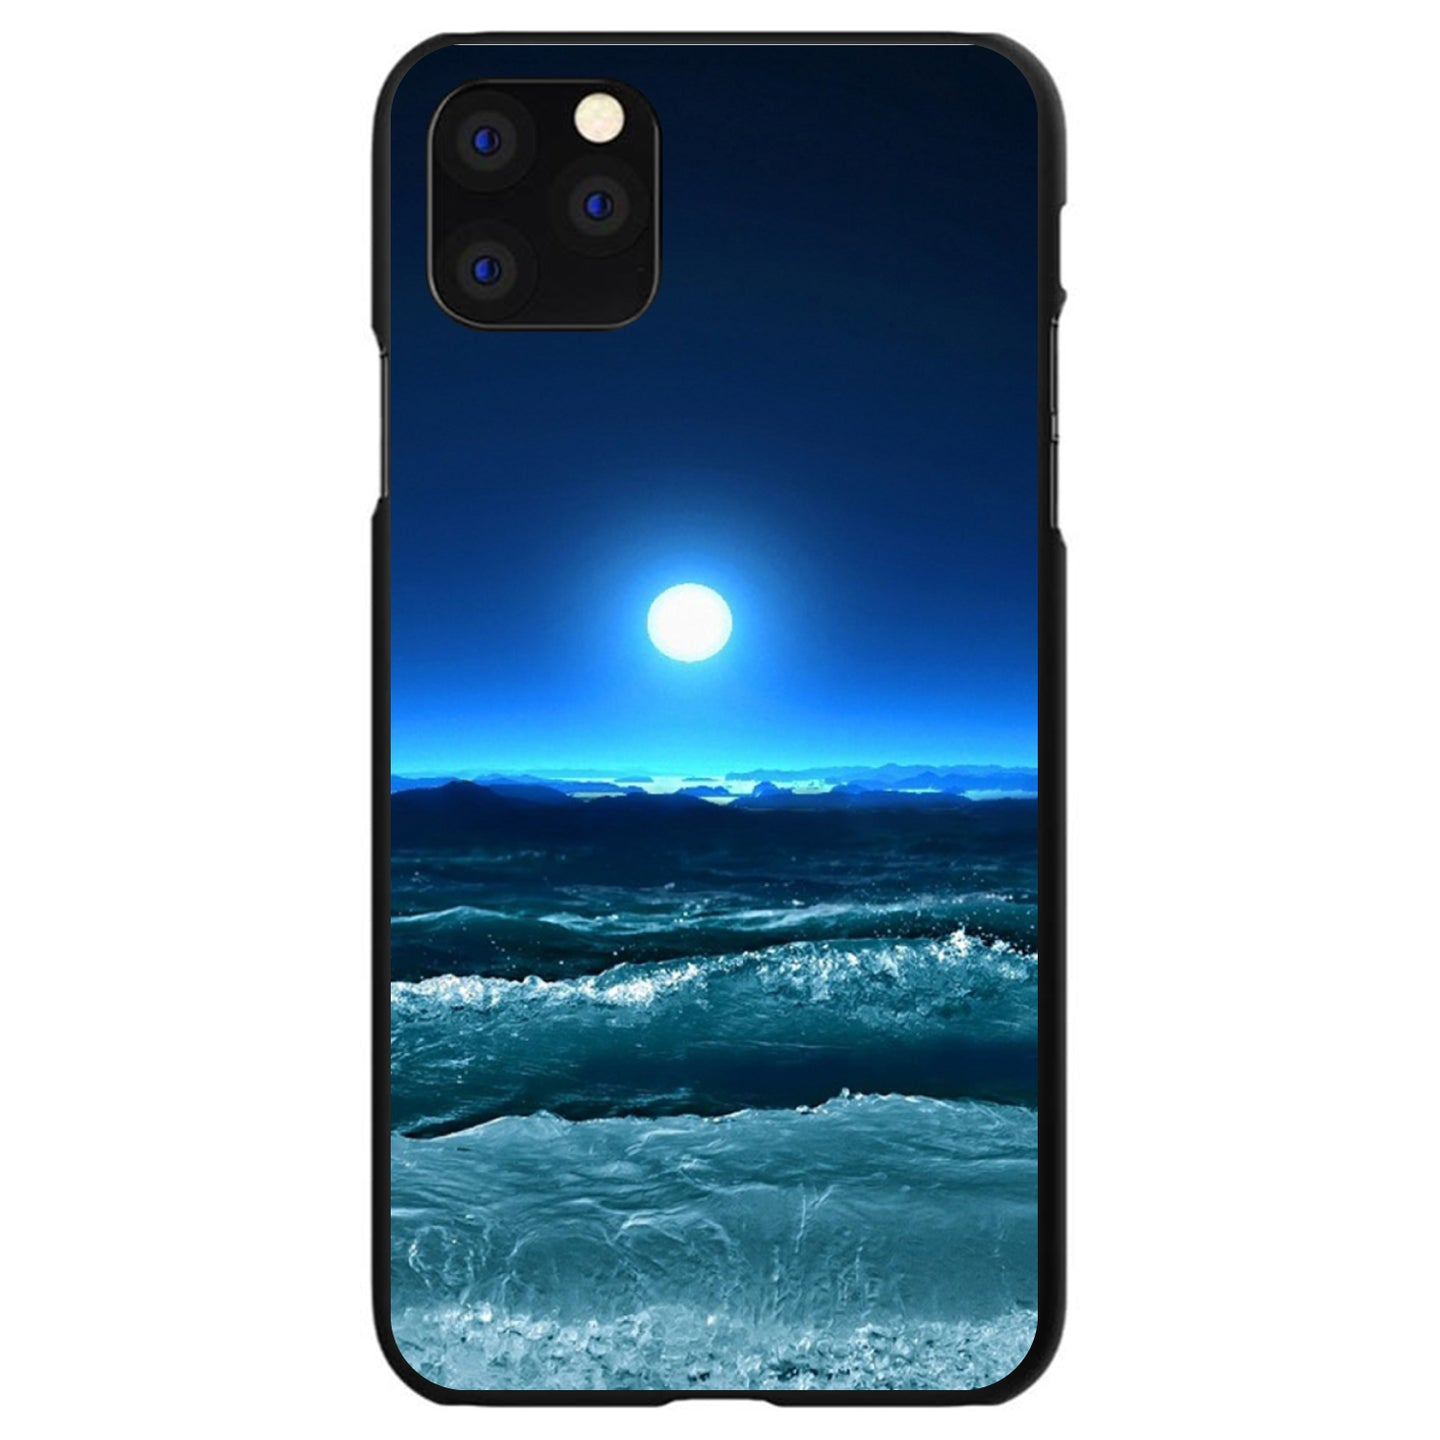 DistinctInk® Hard Plastic Snap-On Case for Apple iPhone - Moonlit Ocean Waves